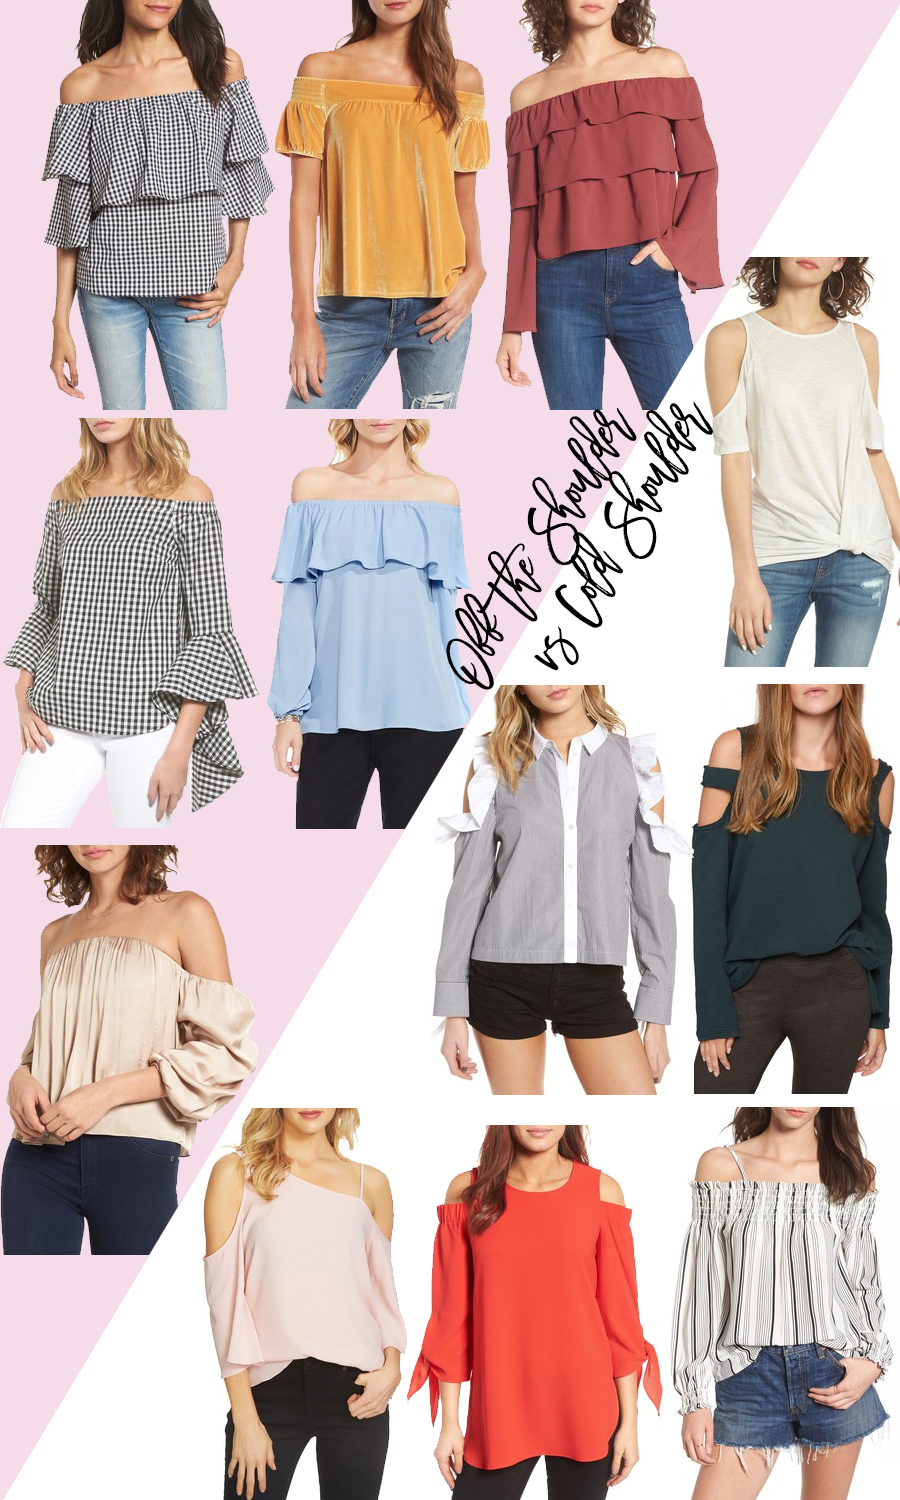 Off the Shoulder vs Cold Shoulder Tops